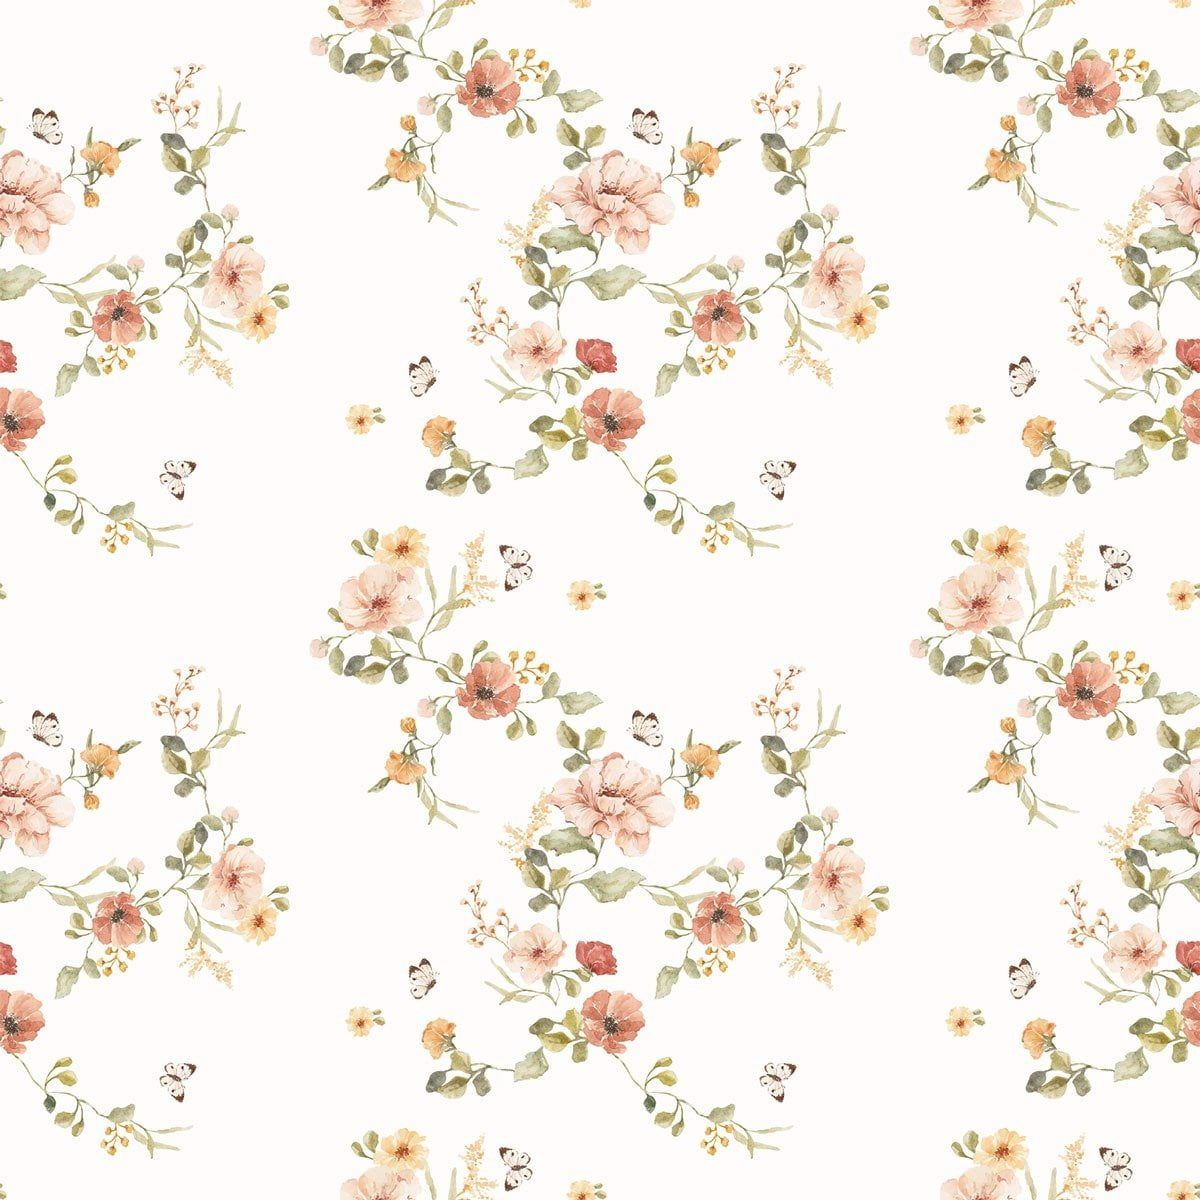 Floral Vintage Wallpaper Dekornik Com Wallstickers And Wallpapers Store